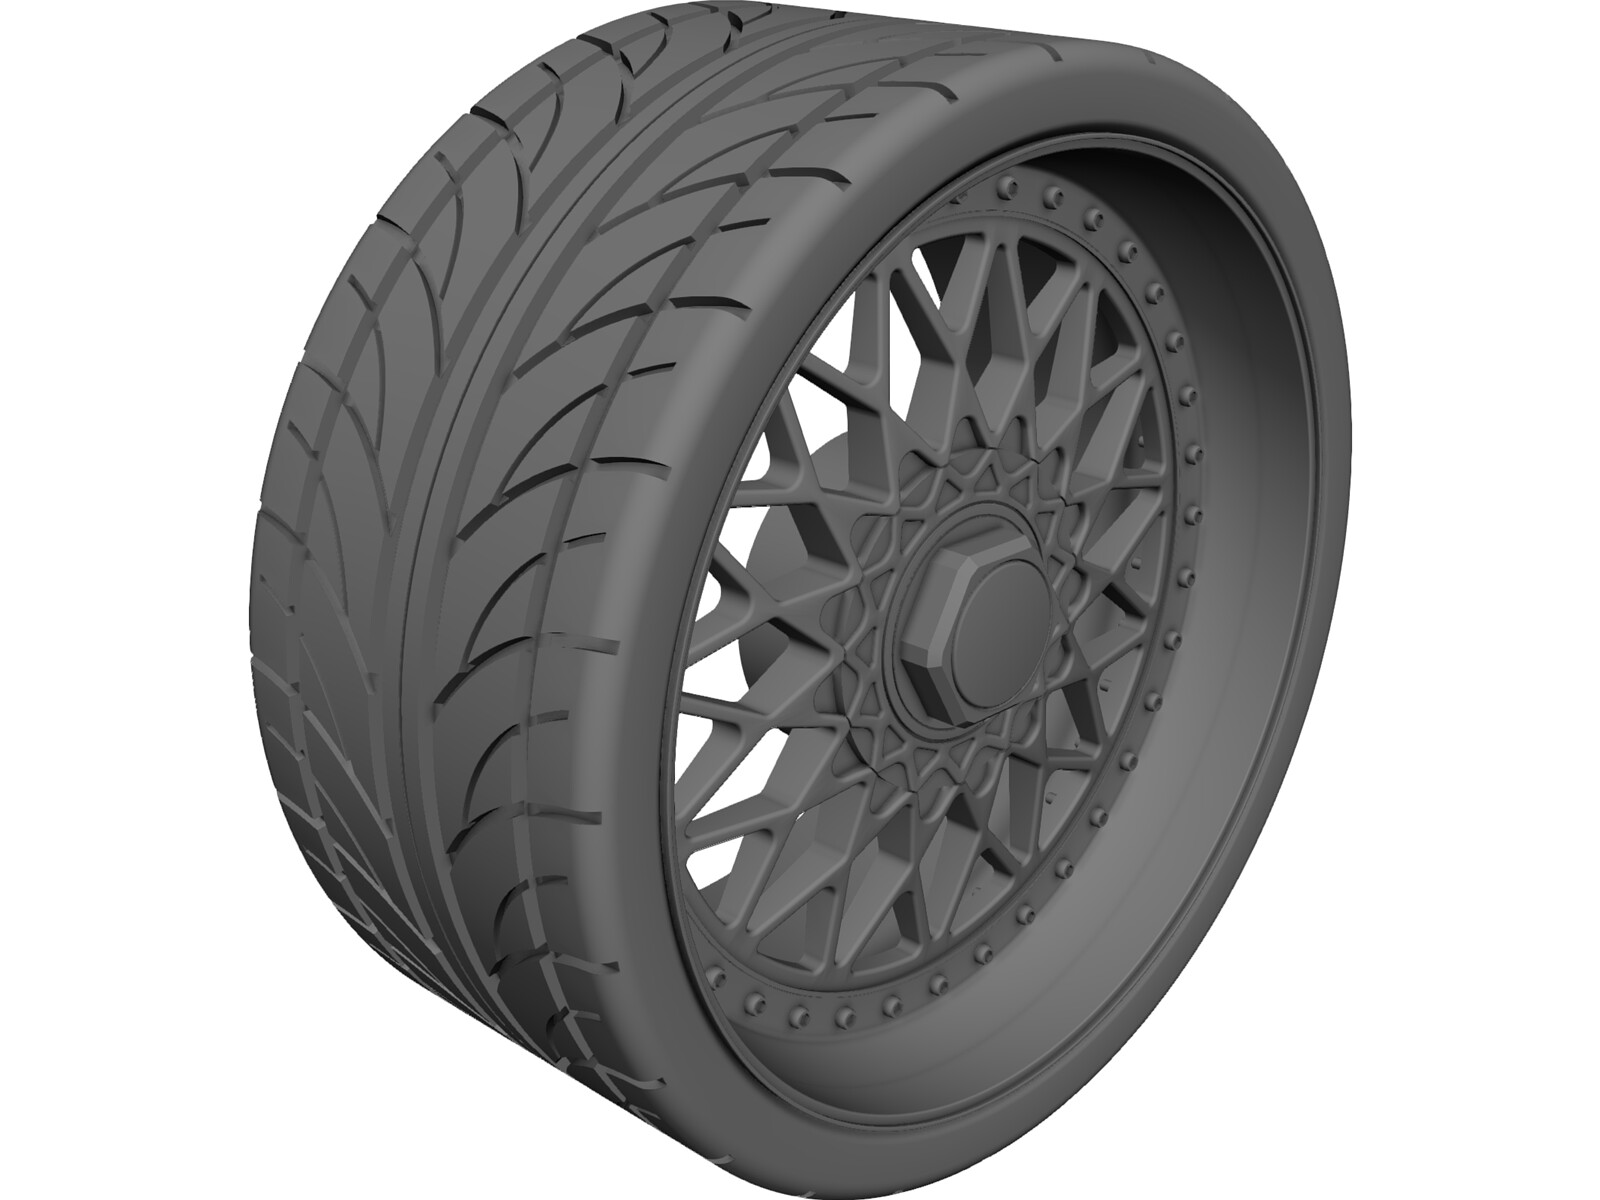 BBS RS Replica 3 Piece Wheel and Tire 3D Model